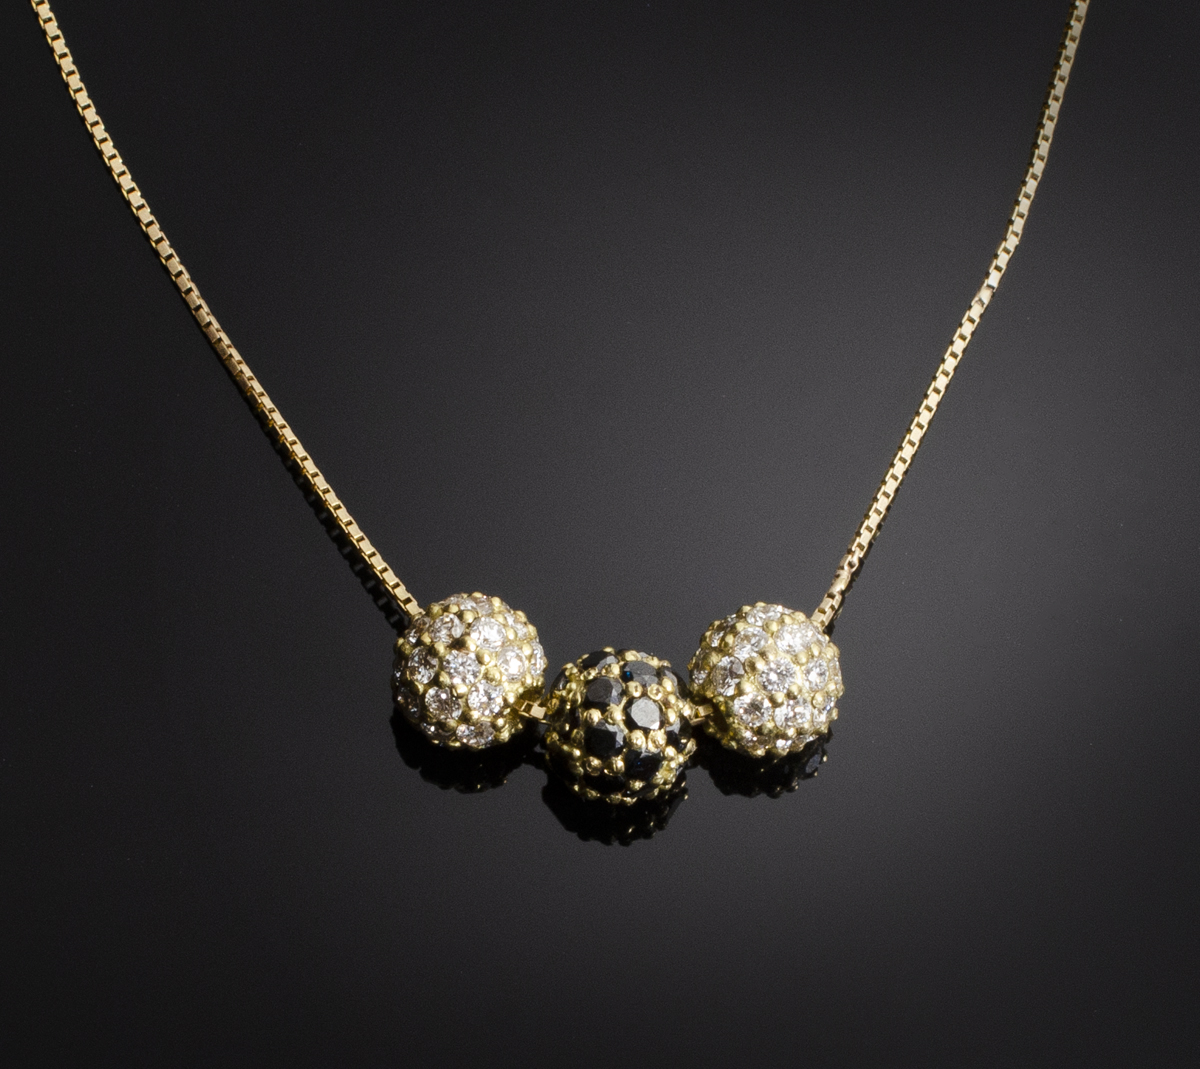 18K yellow gold bead necklace with pave beads of black and colorless Diamonds